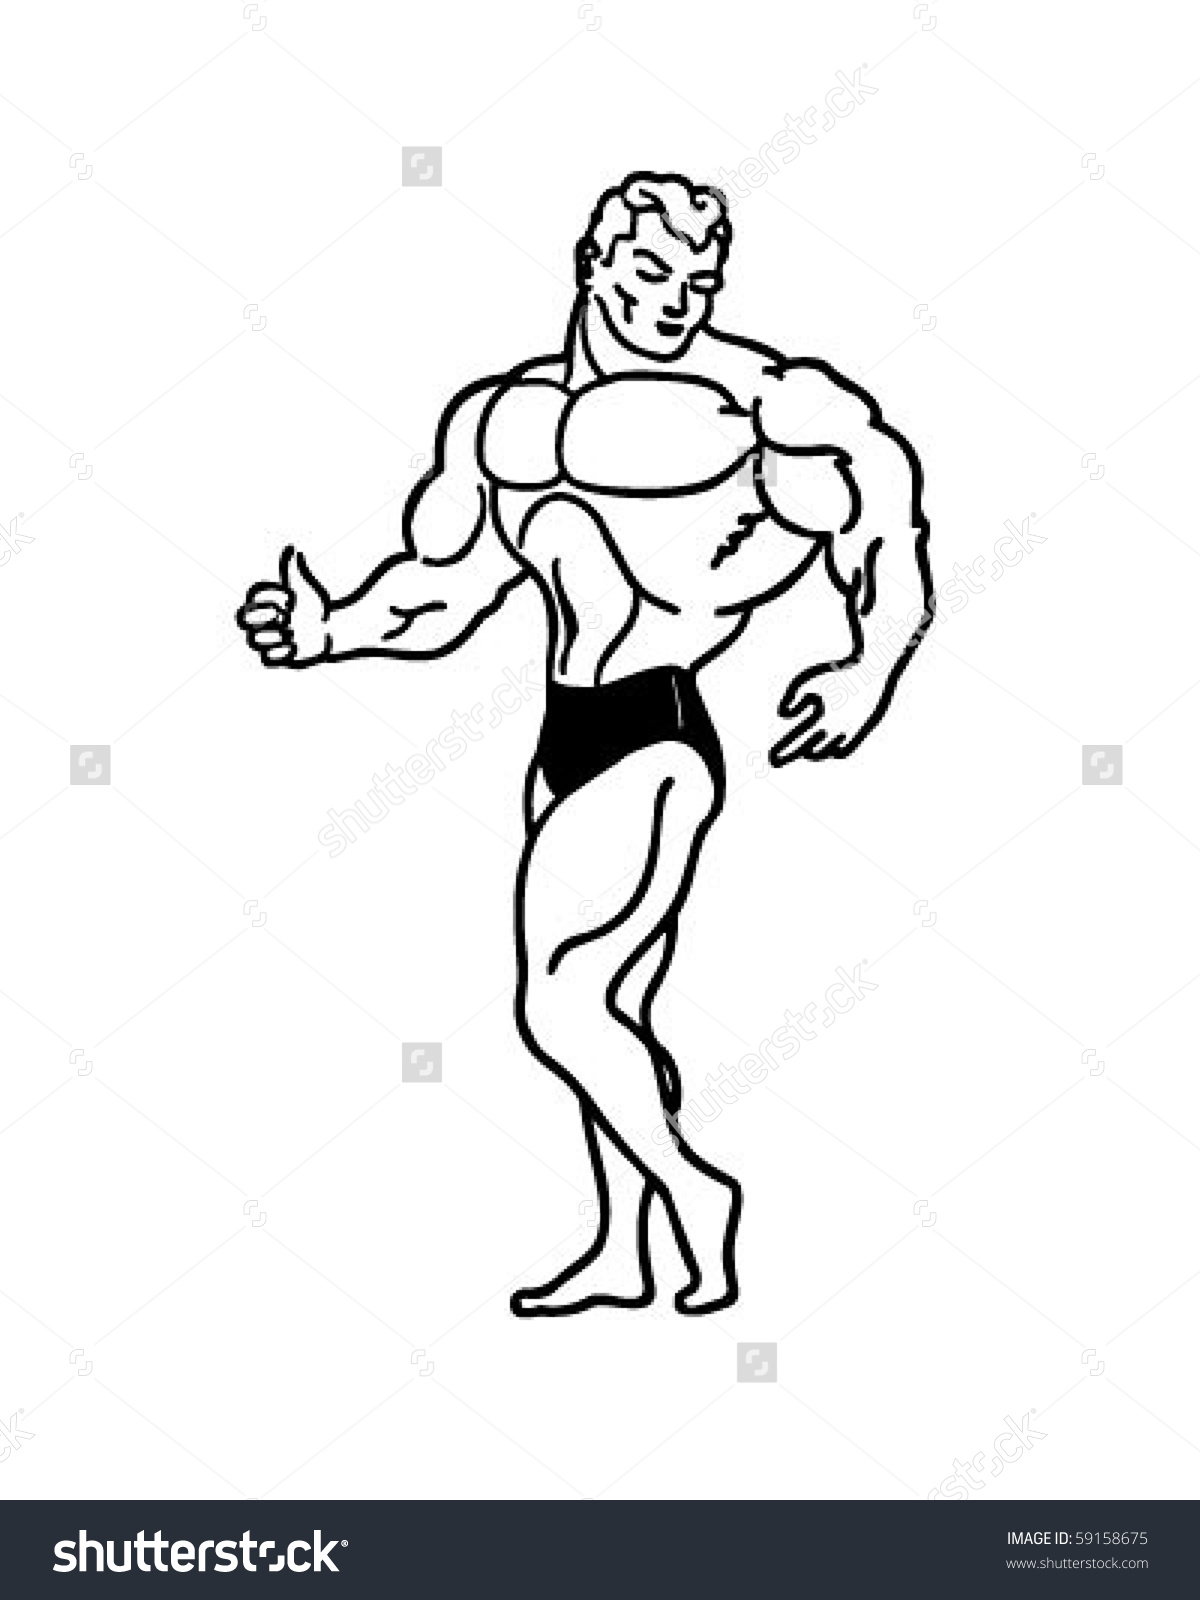 Muscle Man - Retro Clip Art-Muscle Man - Retro Clip Art-13